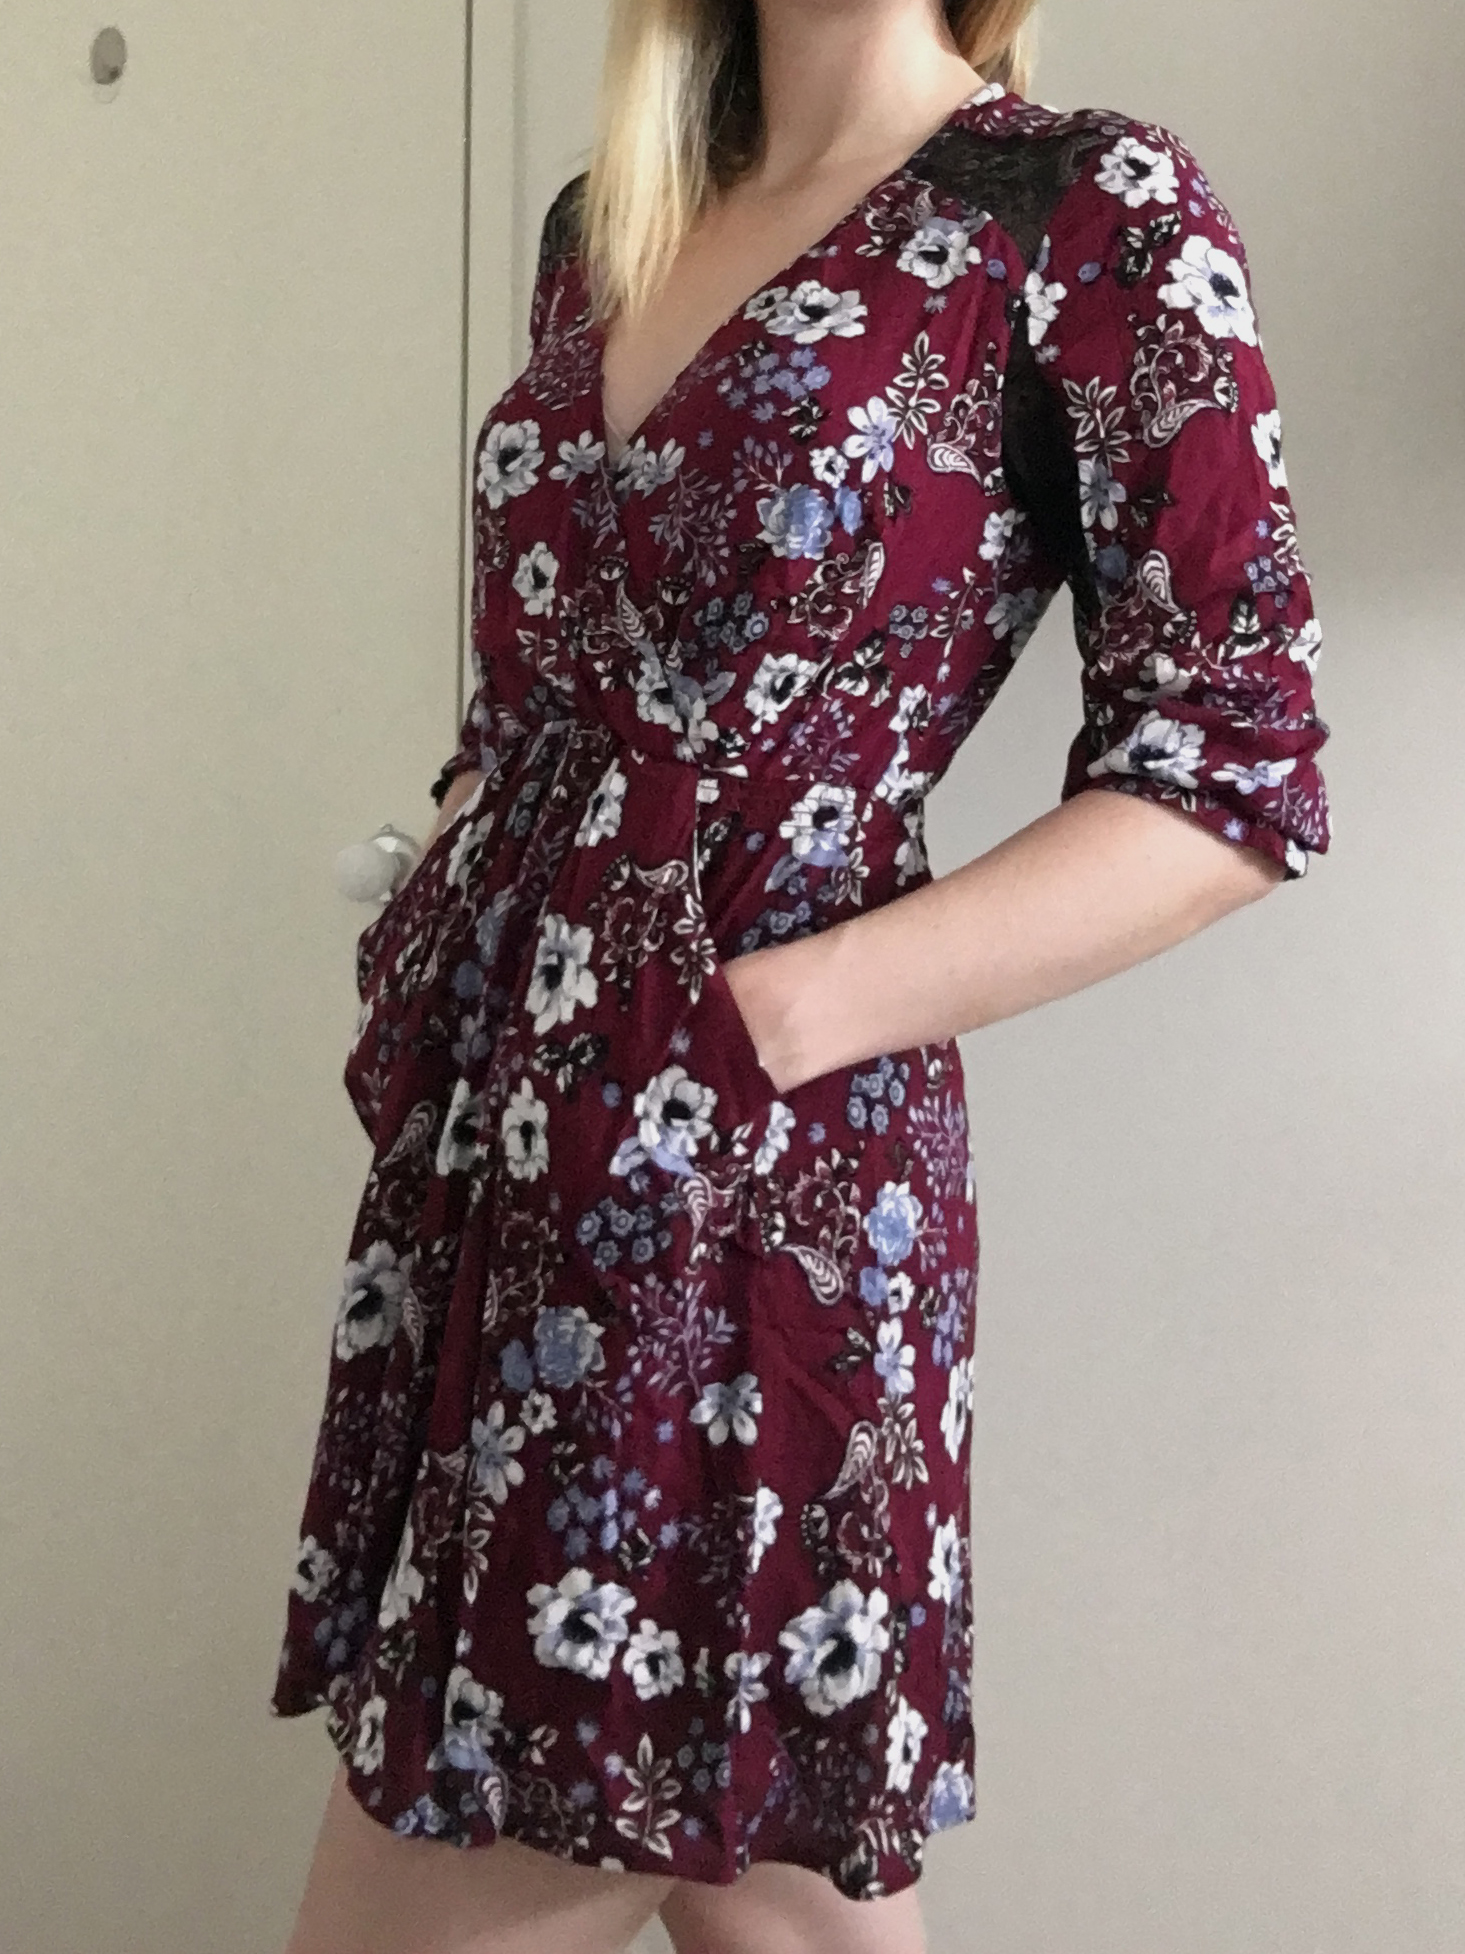 19 Cooper Floral Dress with Lace Back 3